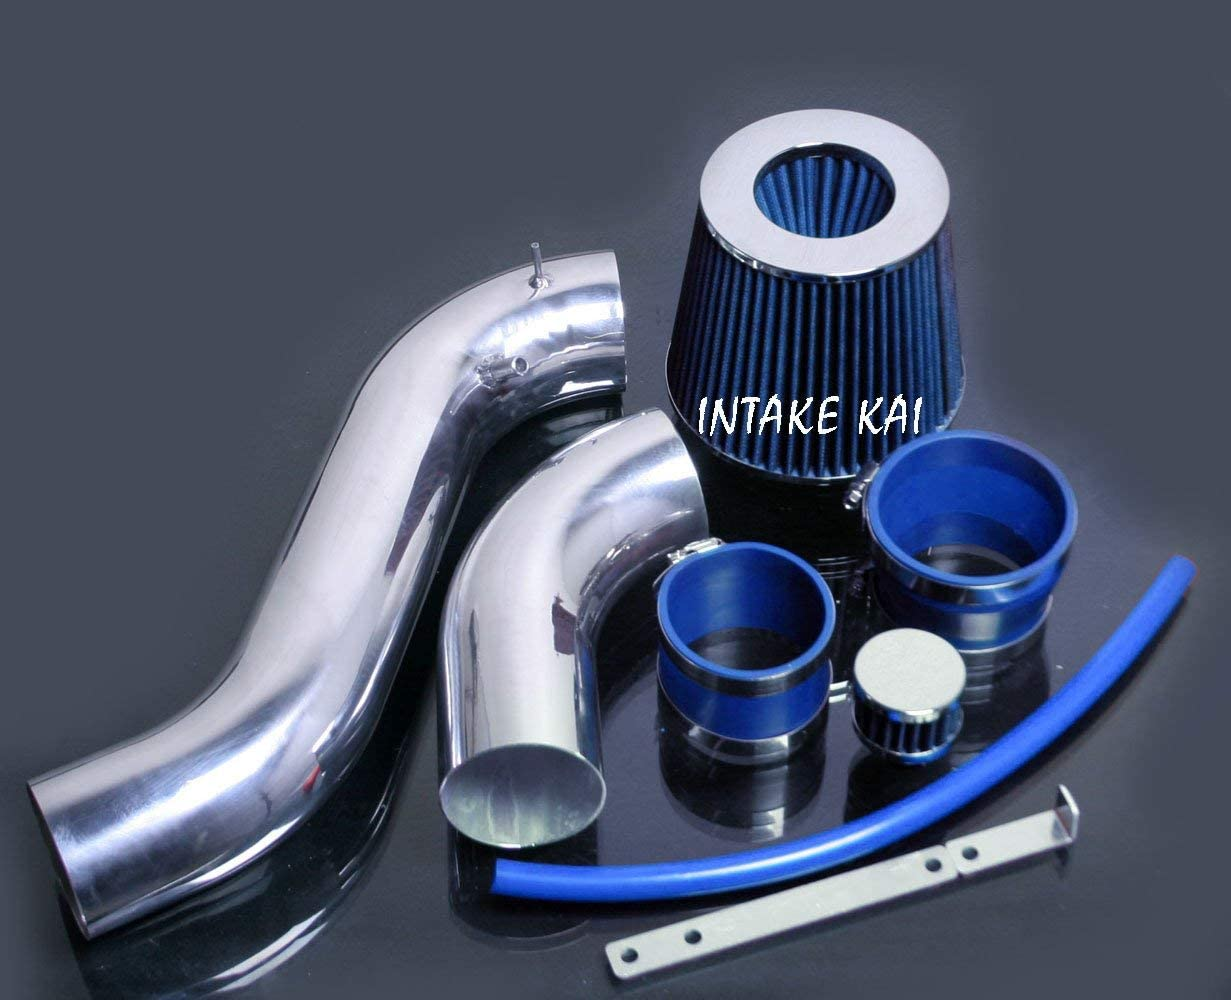 Performance Air Intake Kit + Ranking TOP11 Chevrolet Max 64% OFF Filter Fit 2002-2005 For